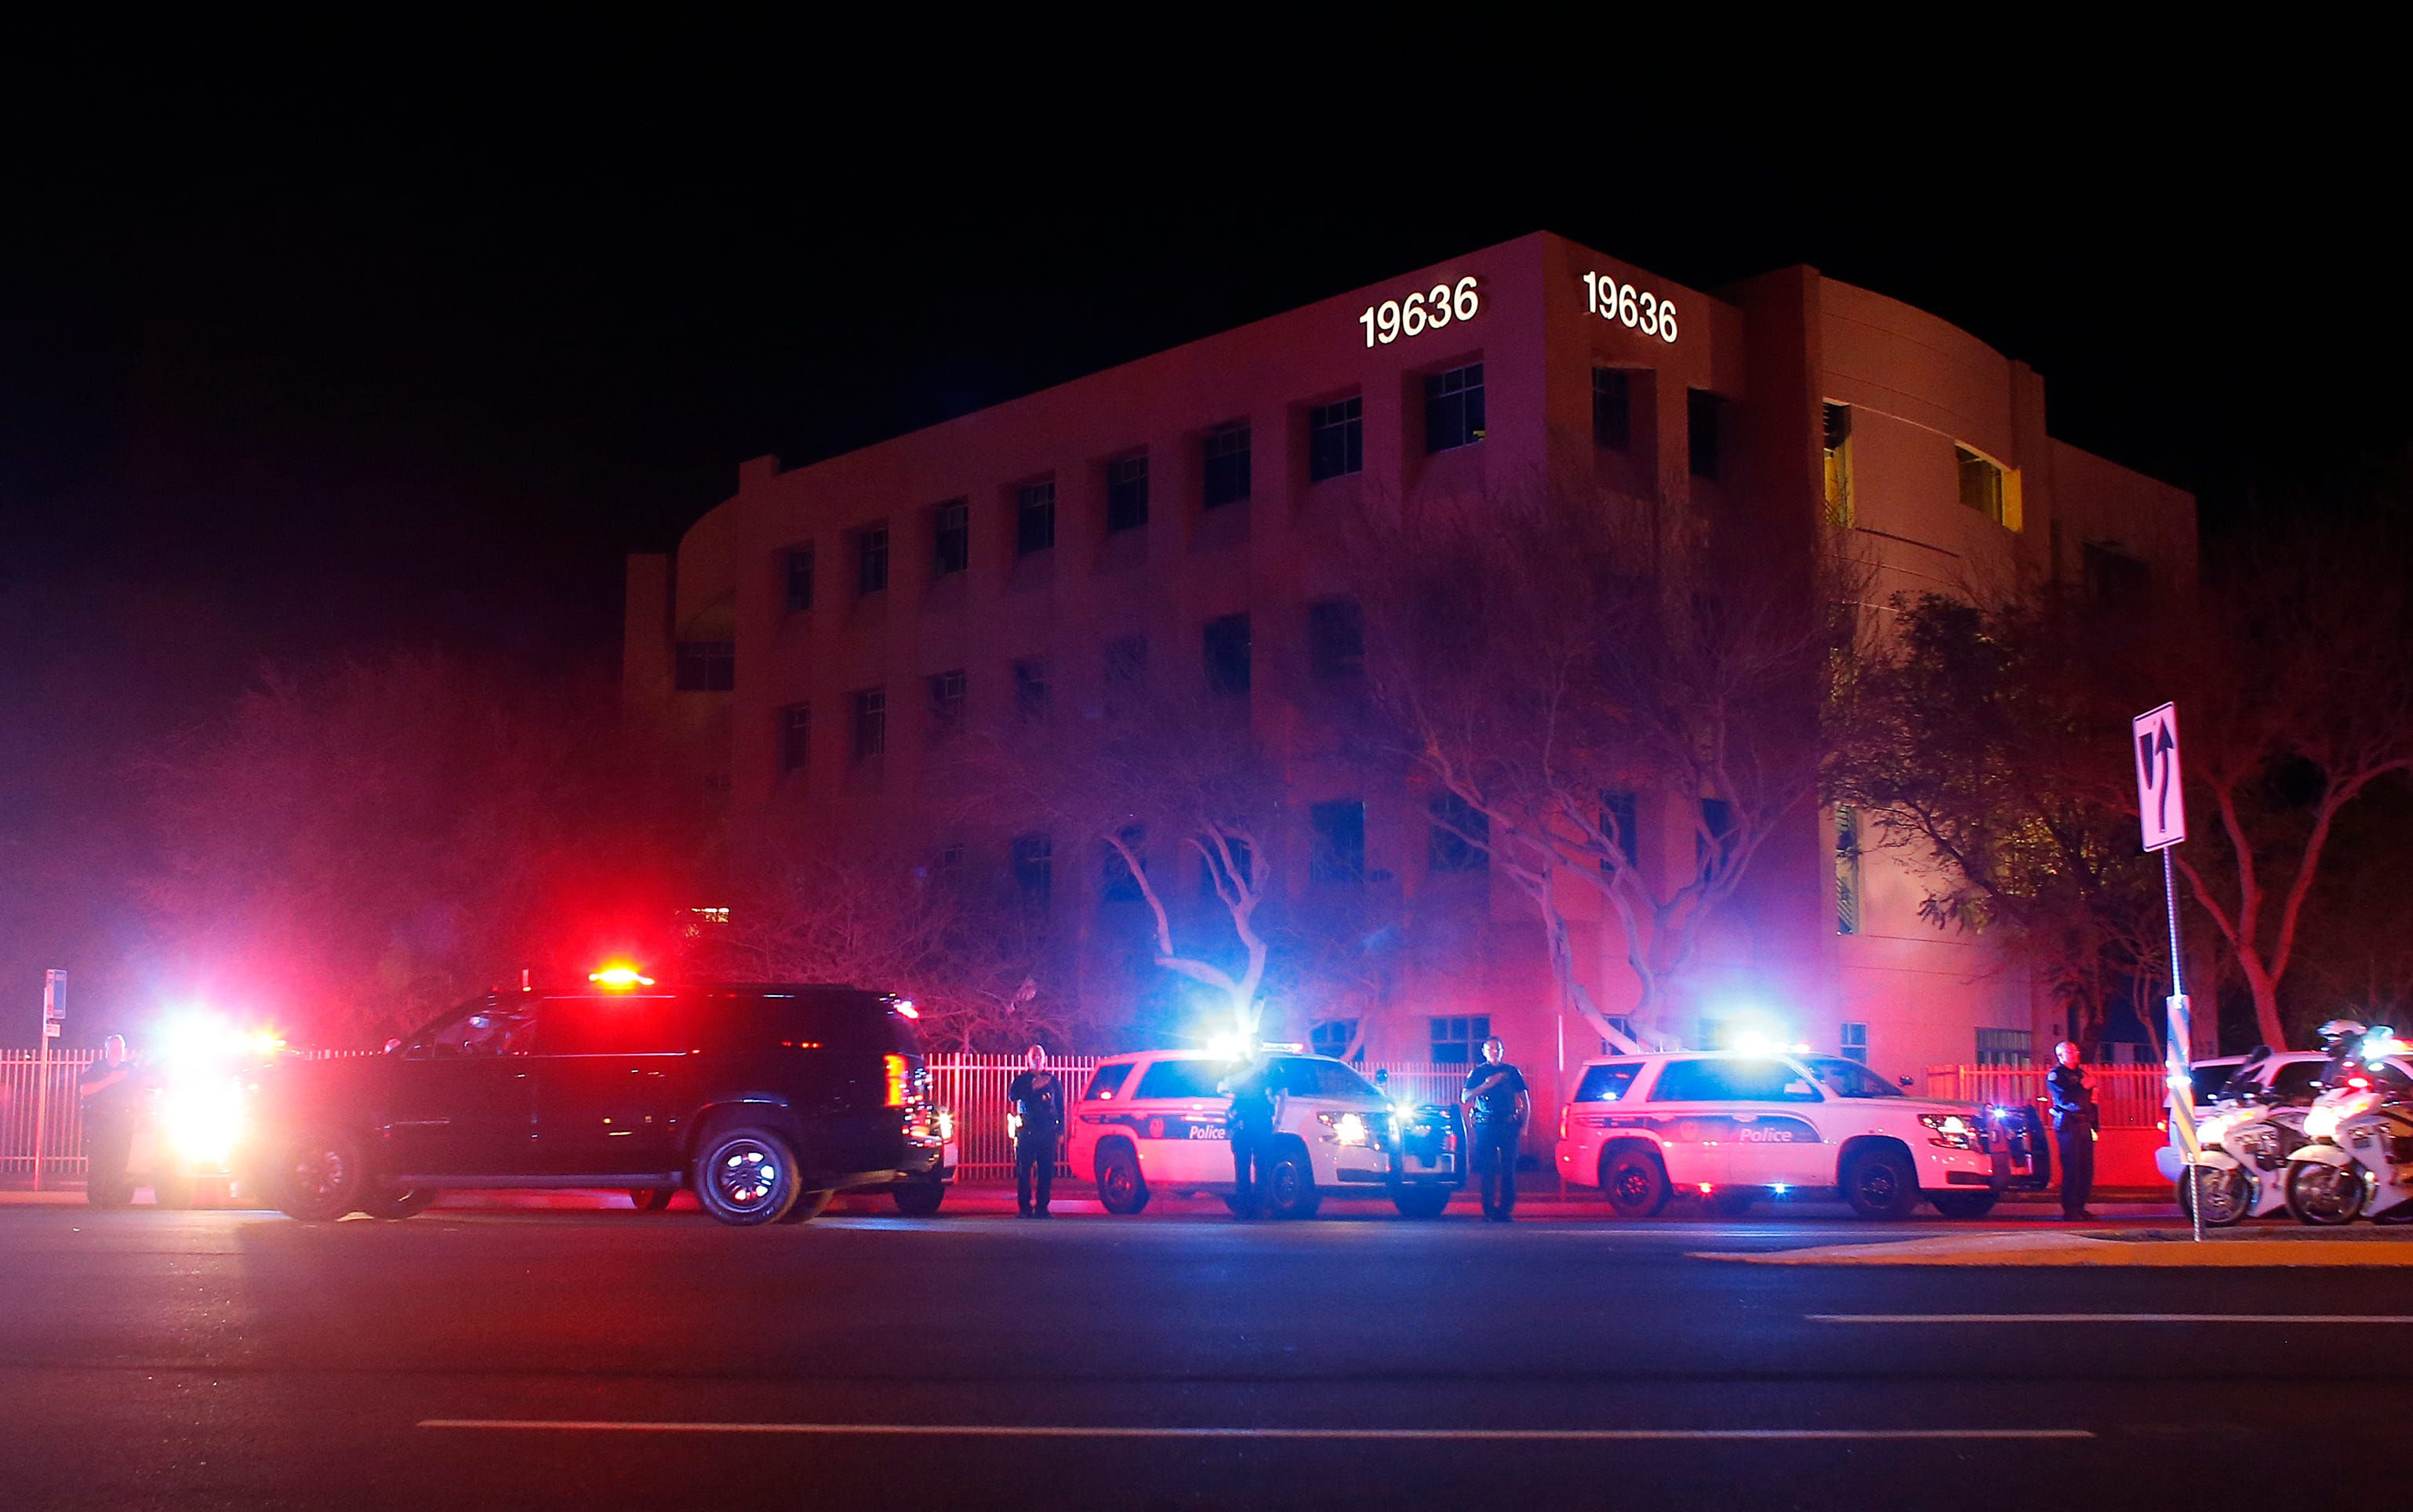 Police commander killed, 2 officers wounded in Phoenix shooting